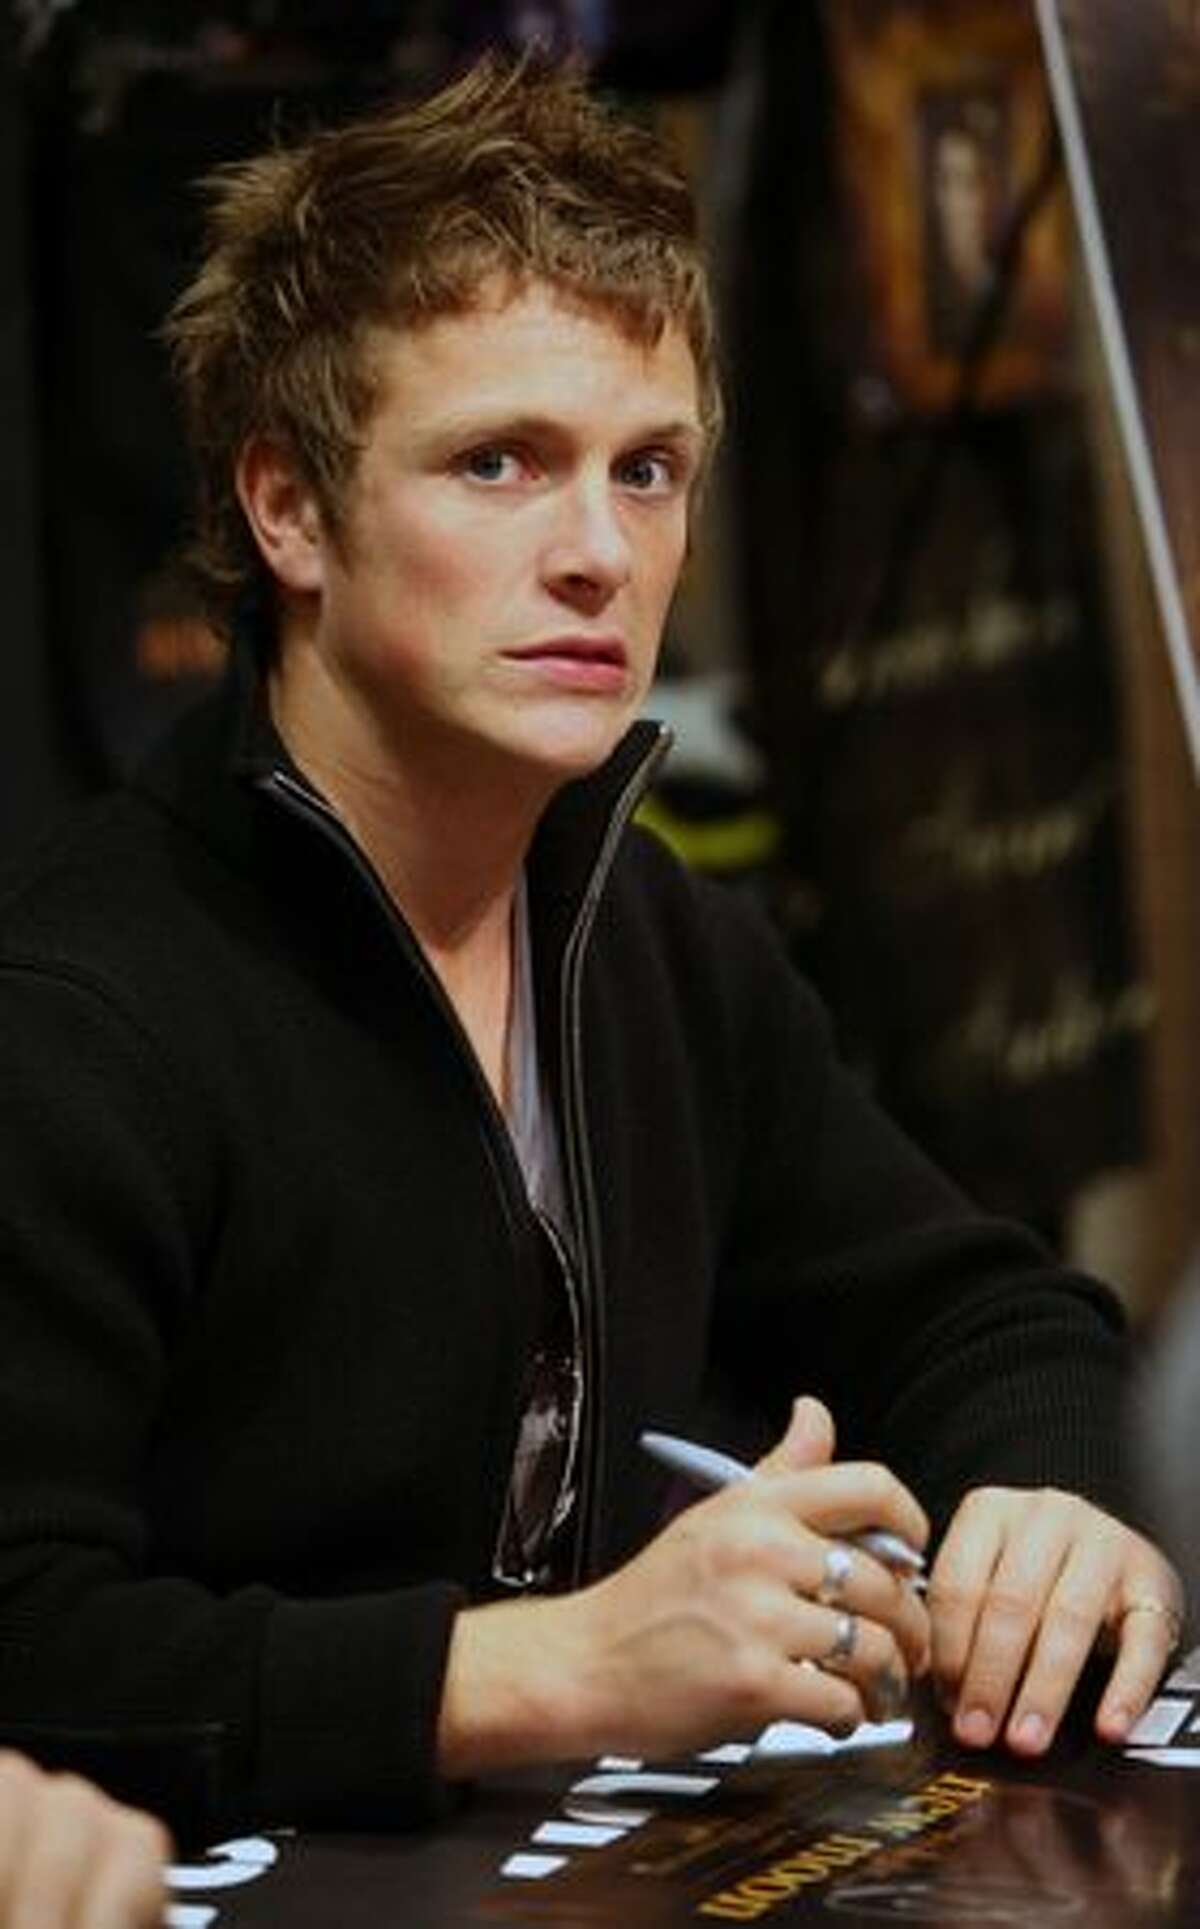 Charlie Bewley, who plays the vampire Demetri, will be appearing in his first film role in